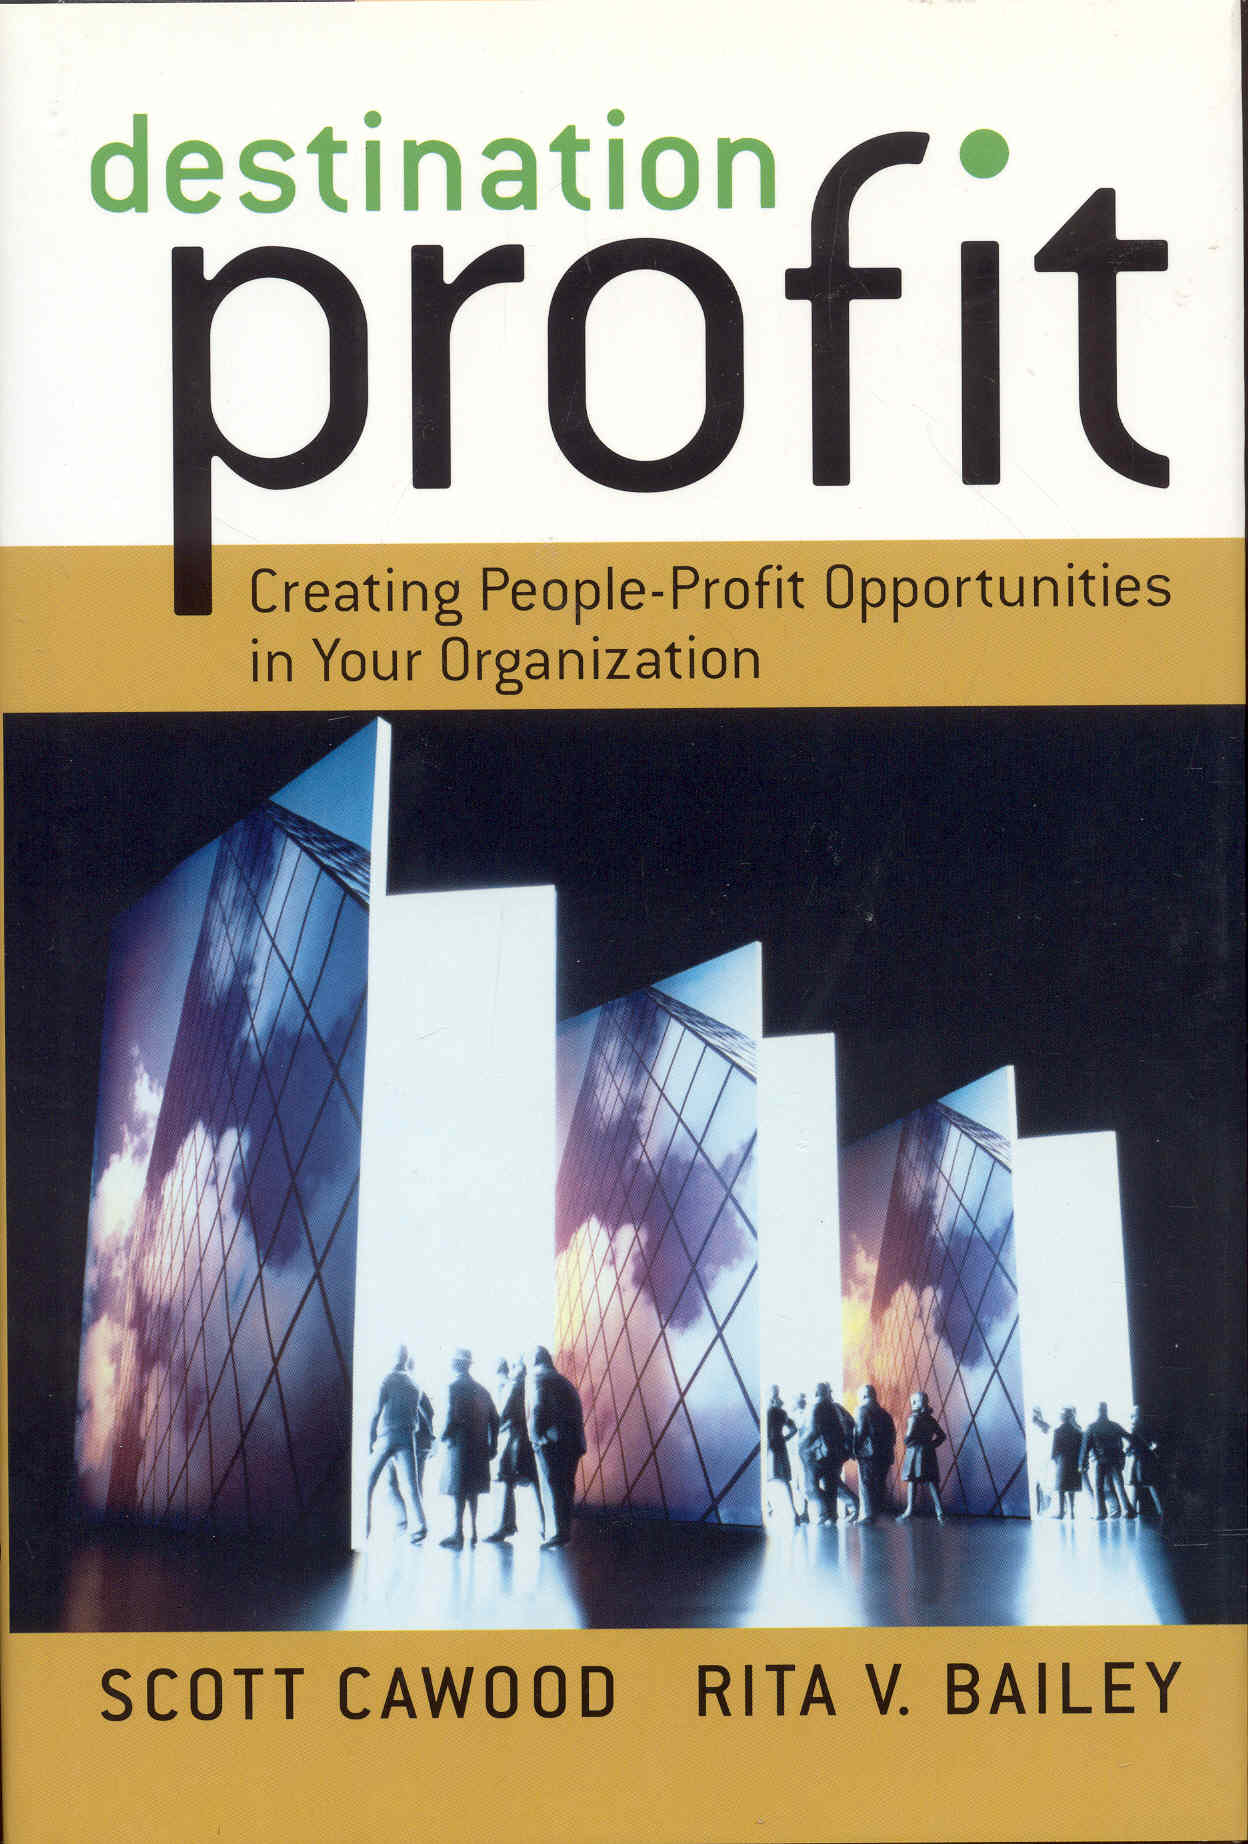 Image for Destination Profit: Creating People-Profit Opportunities in Your Organization